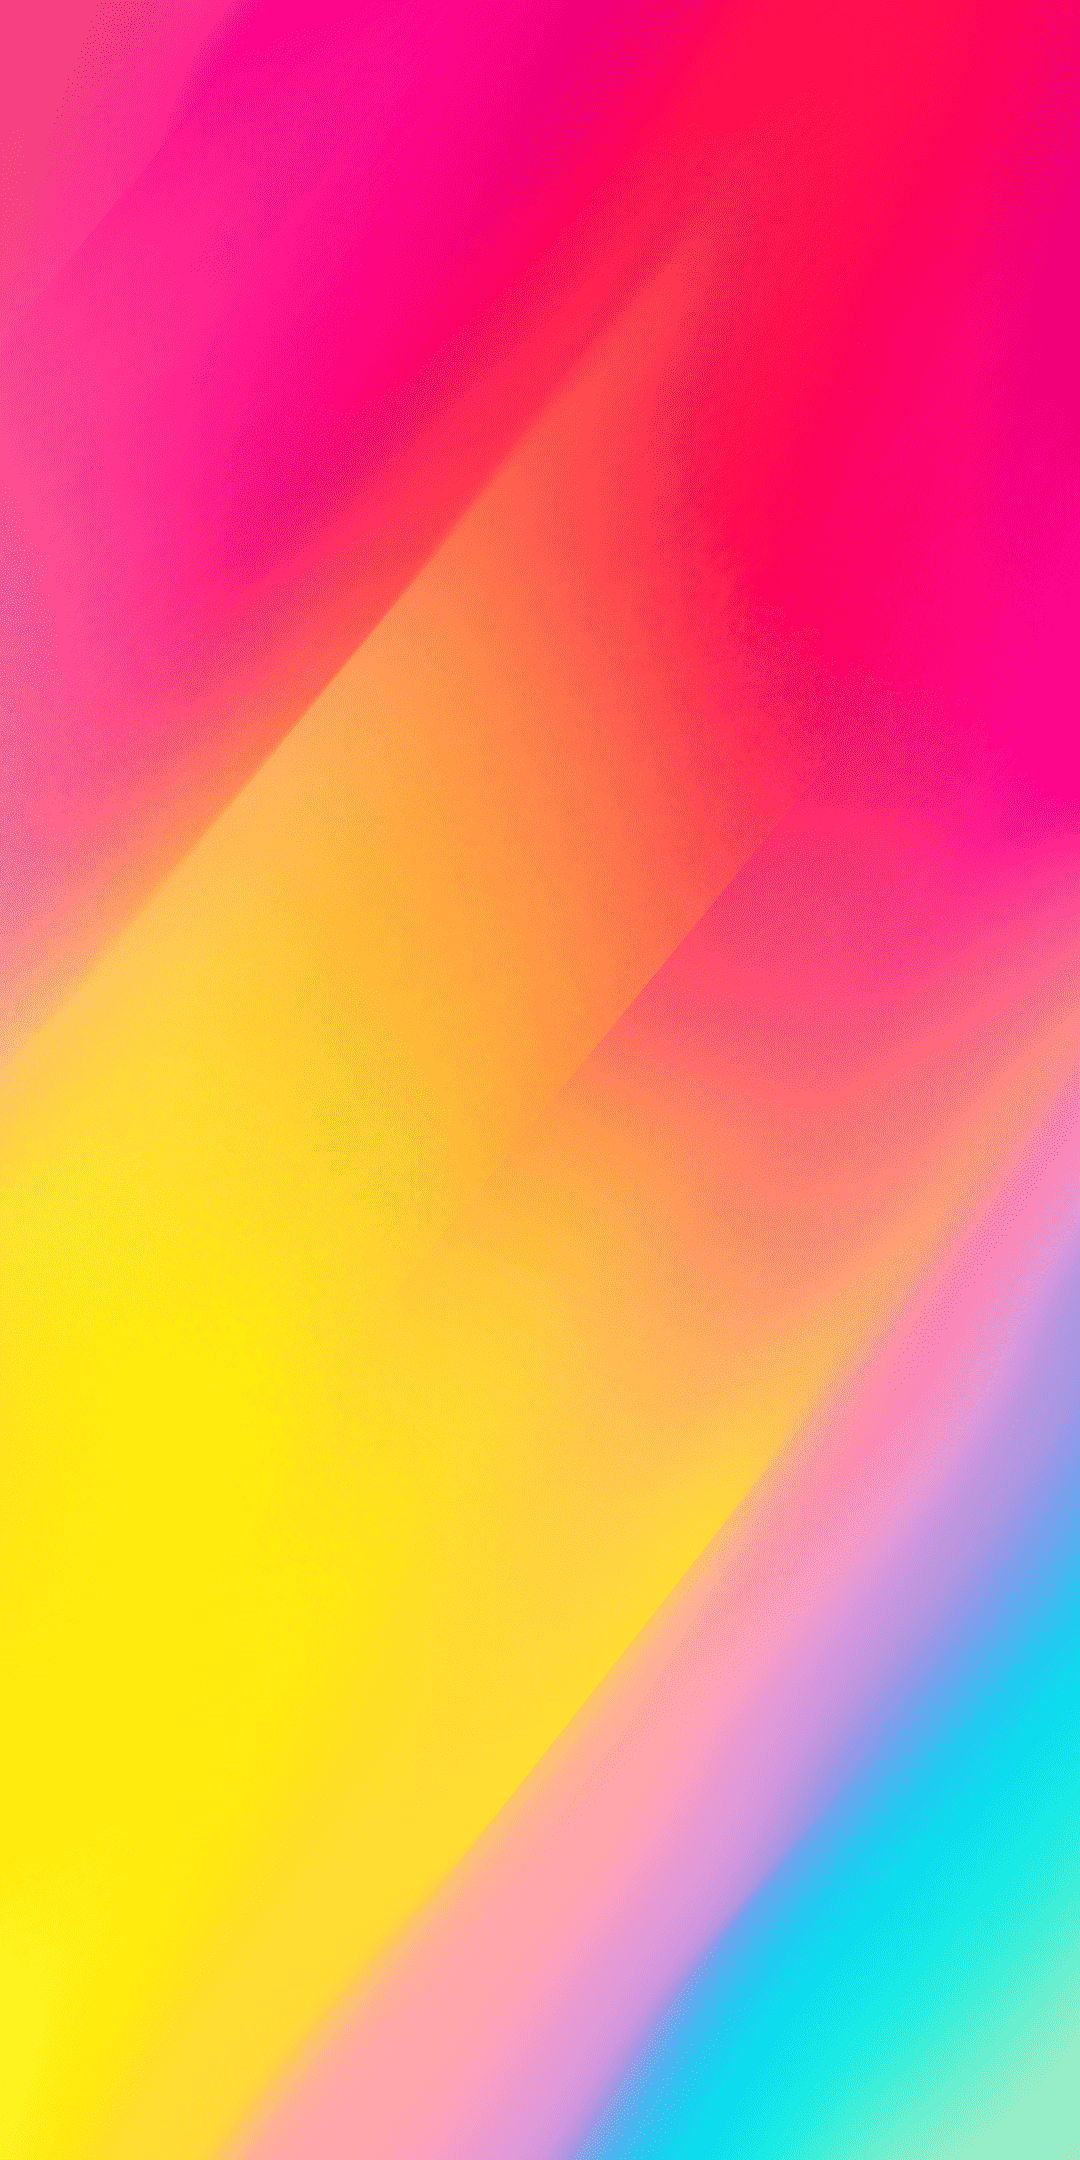 Download Sharp Aquos S3 Wallpapers [Free Android Wallpapers]